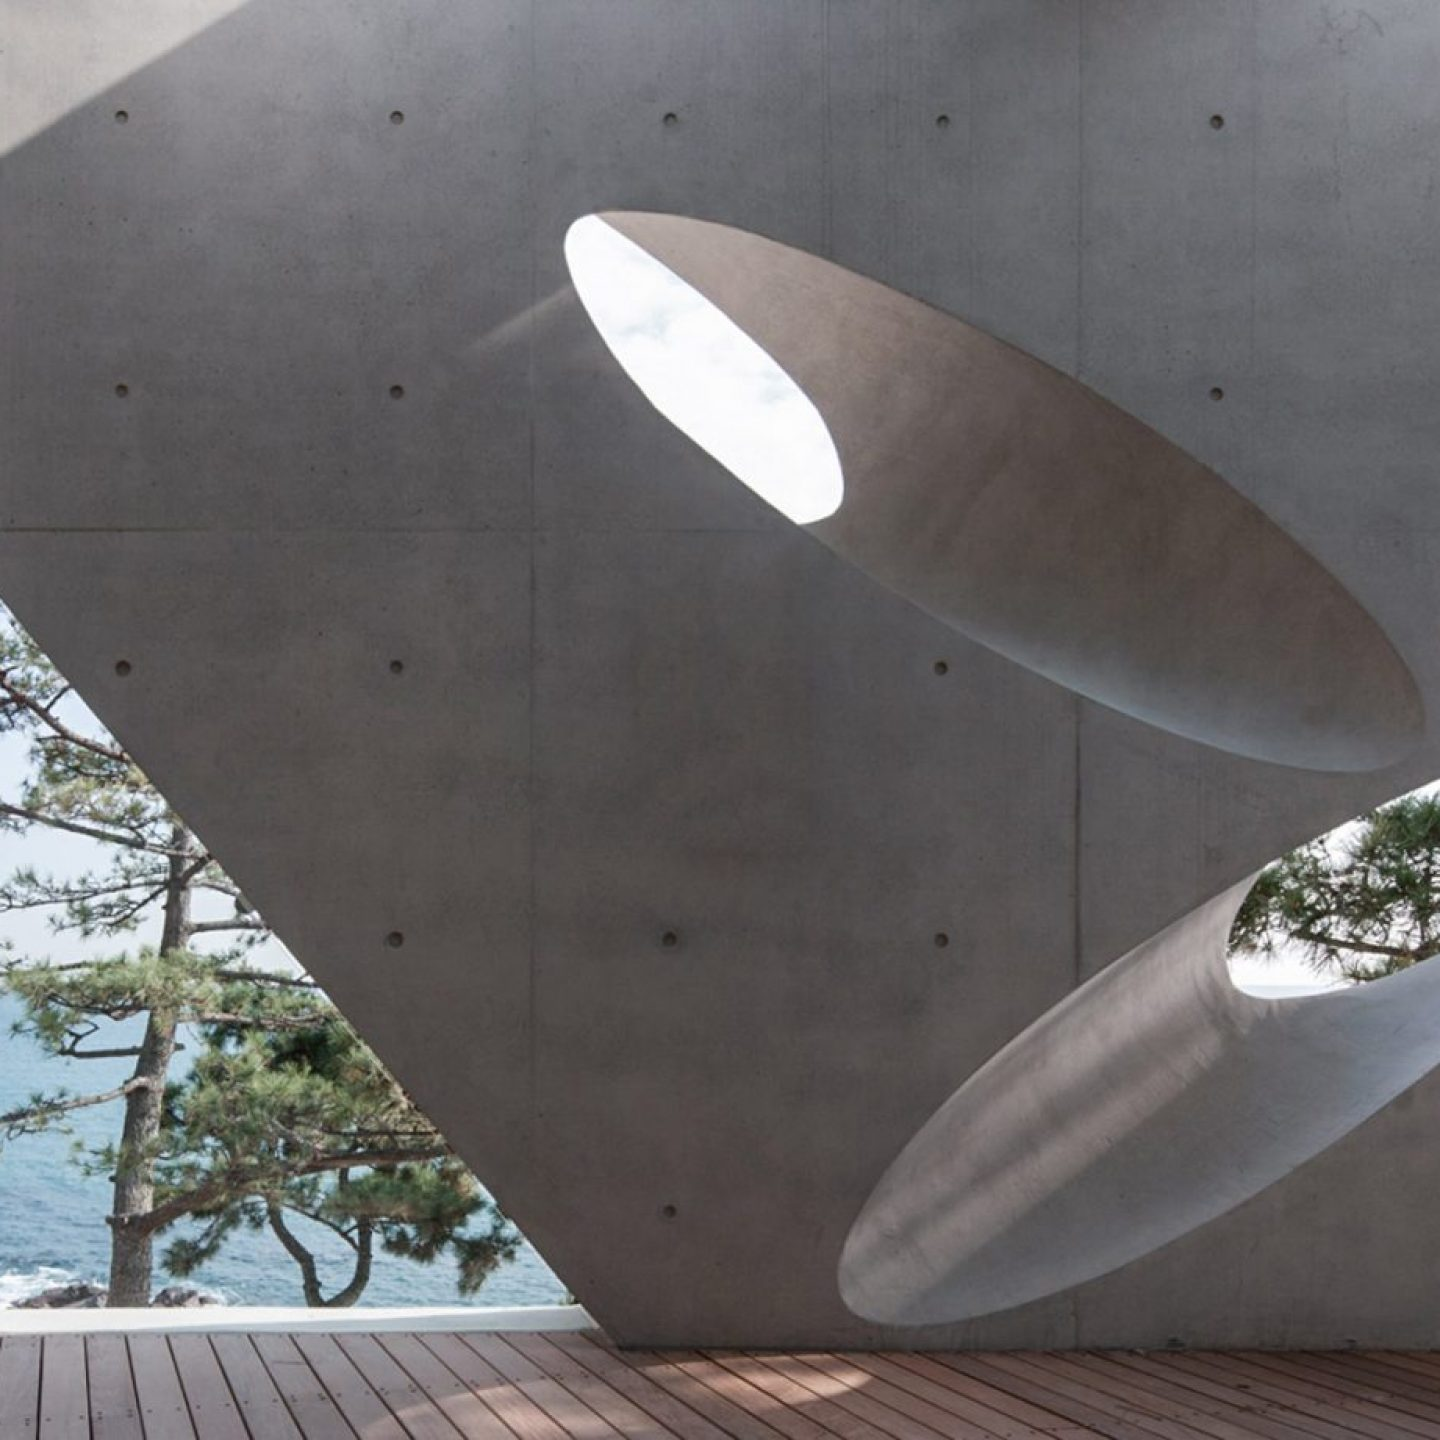 gijang-waveon-heesoo-kwak-idmm-architects-architecture-residential-house-south-korea_dezeen_2364_col_15